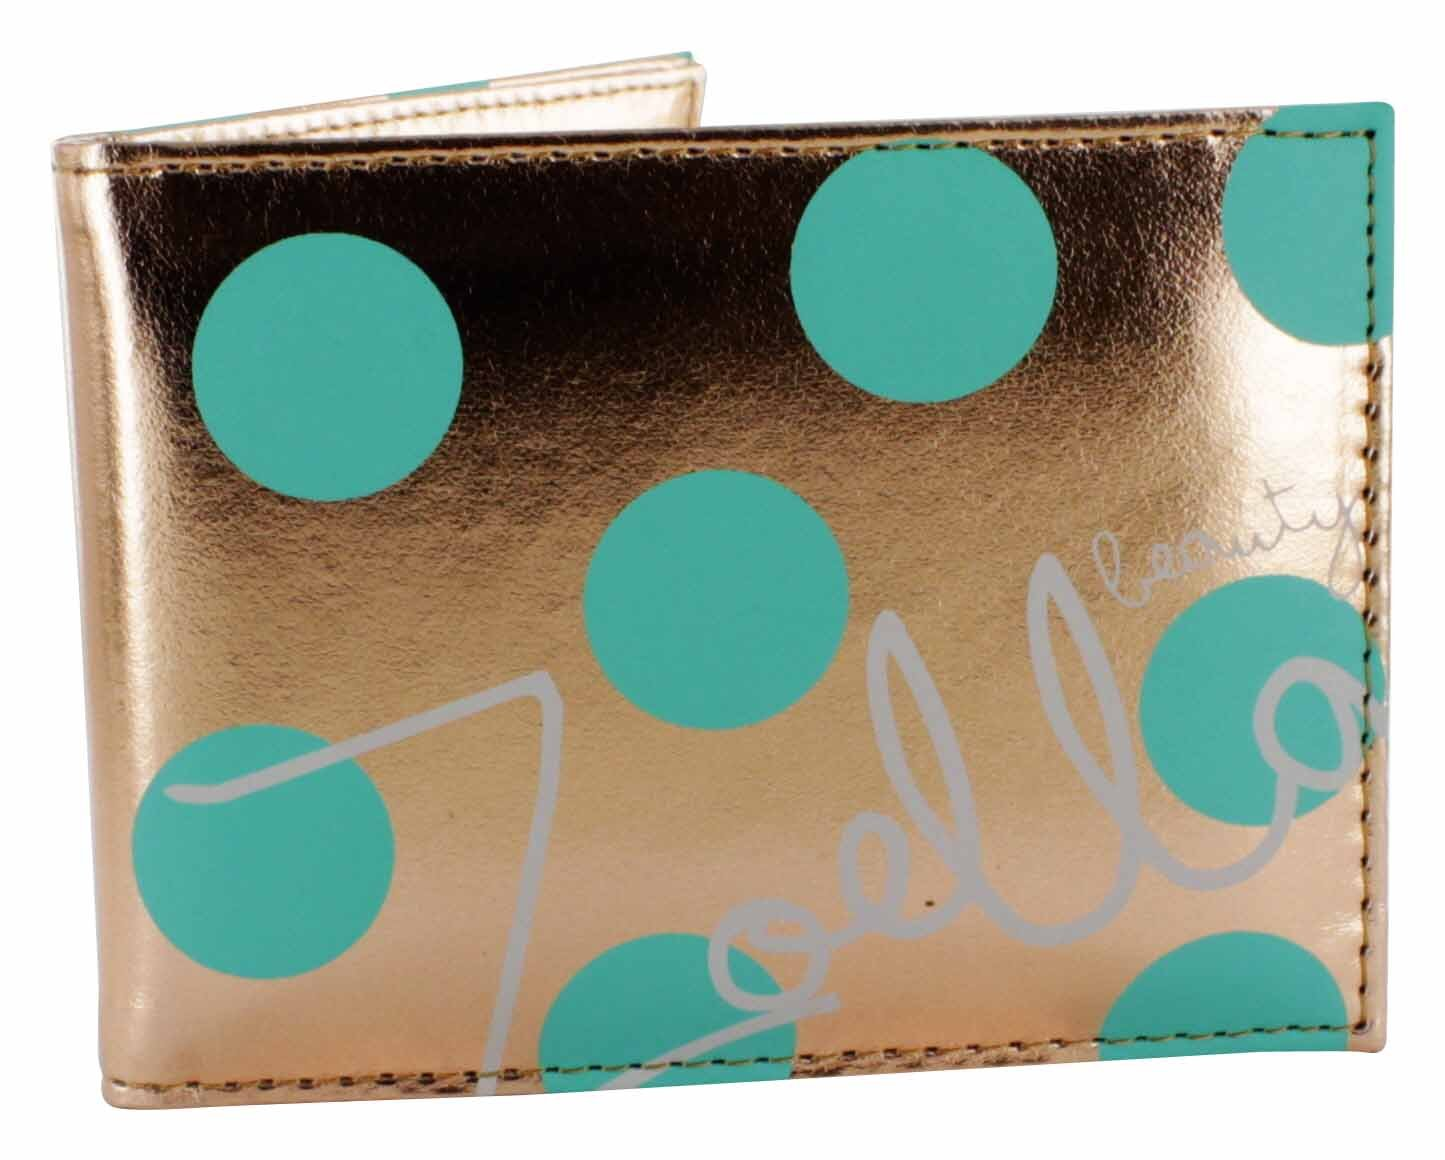 Zoella Beauty Fairest of them all Travel Pass and Compact Mirror - Gold with Teal Polka Dots by Zoella Beauty